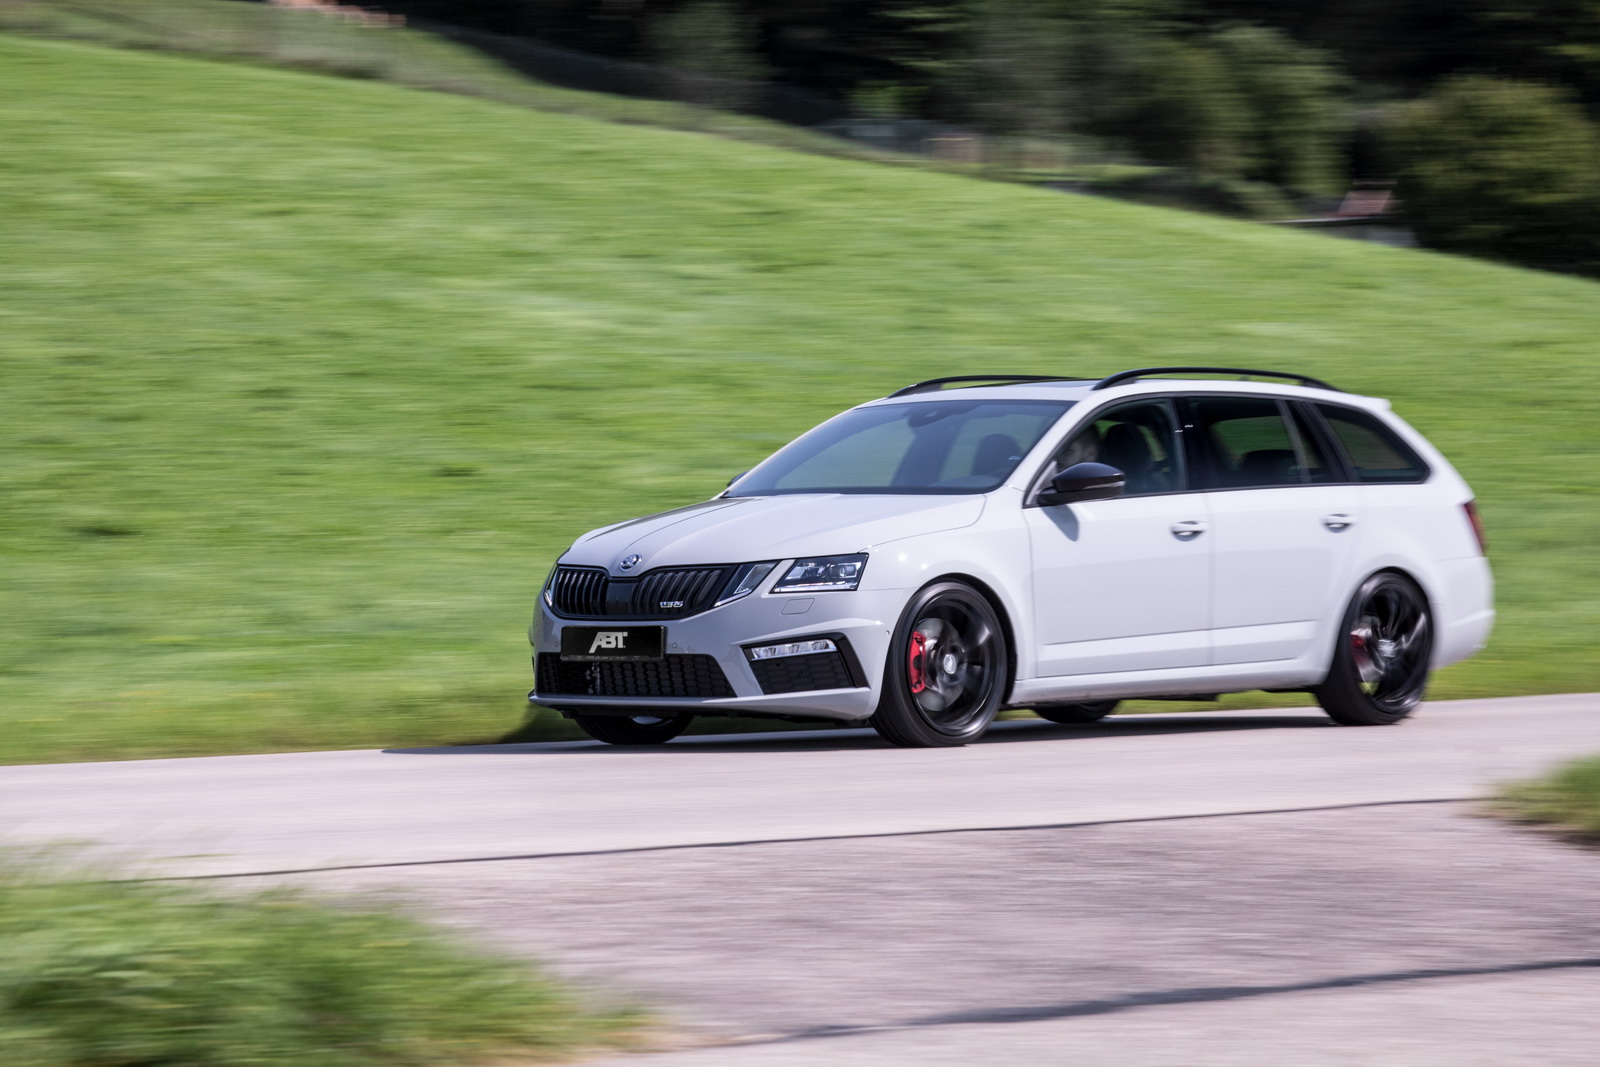 this is skoda octavia rs by abt sportsline outputs 315 hp carz tuning. Black Bedroom Furniture Sets. Home Design Ideas